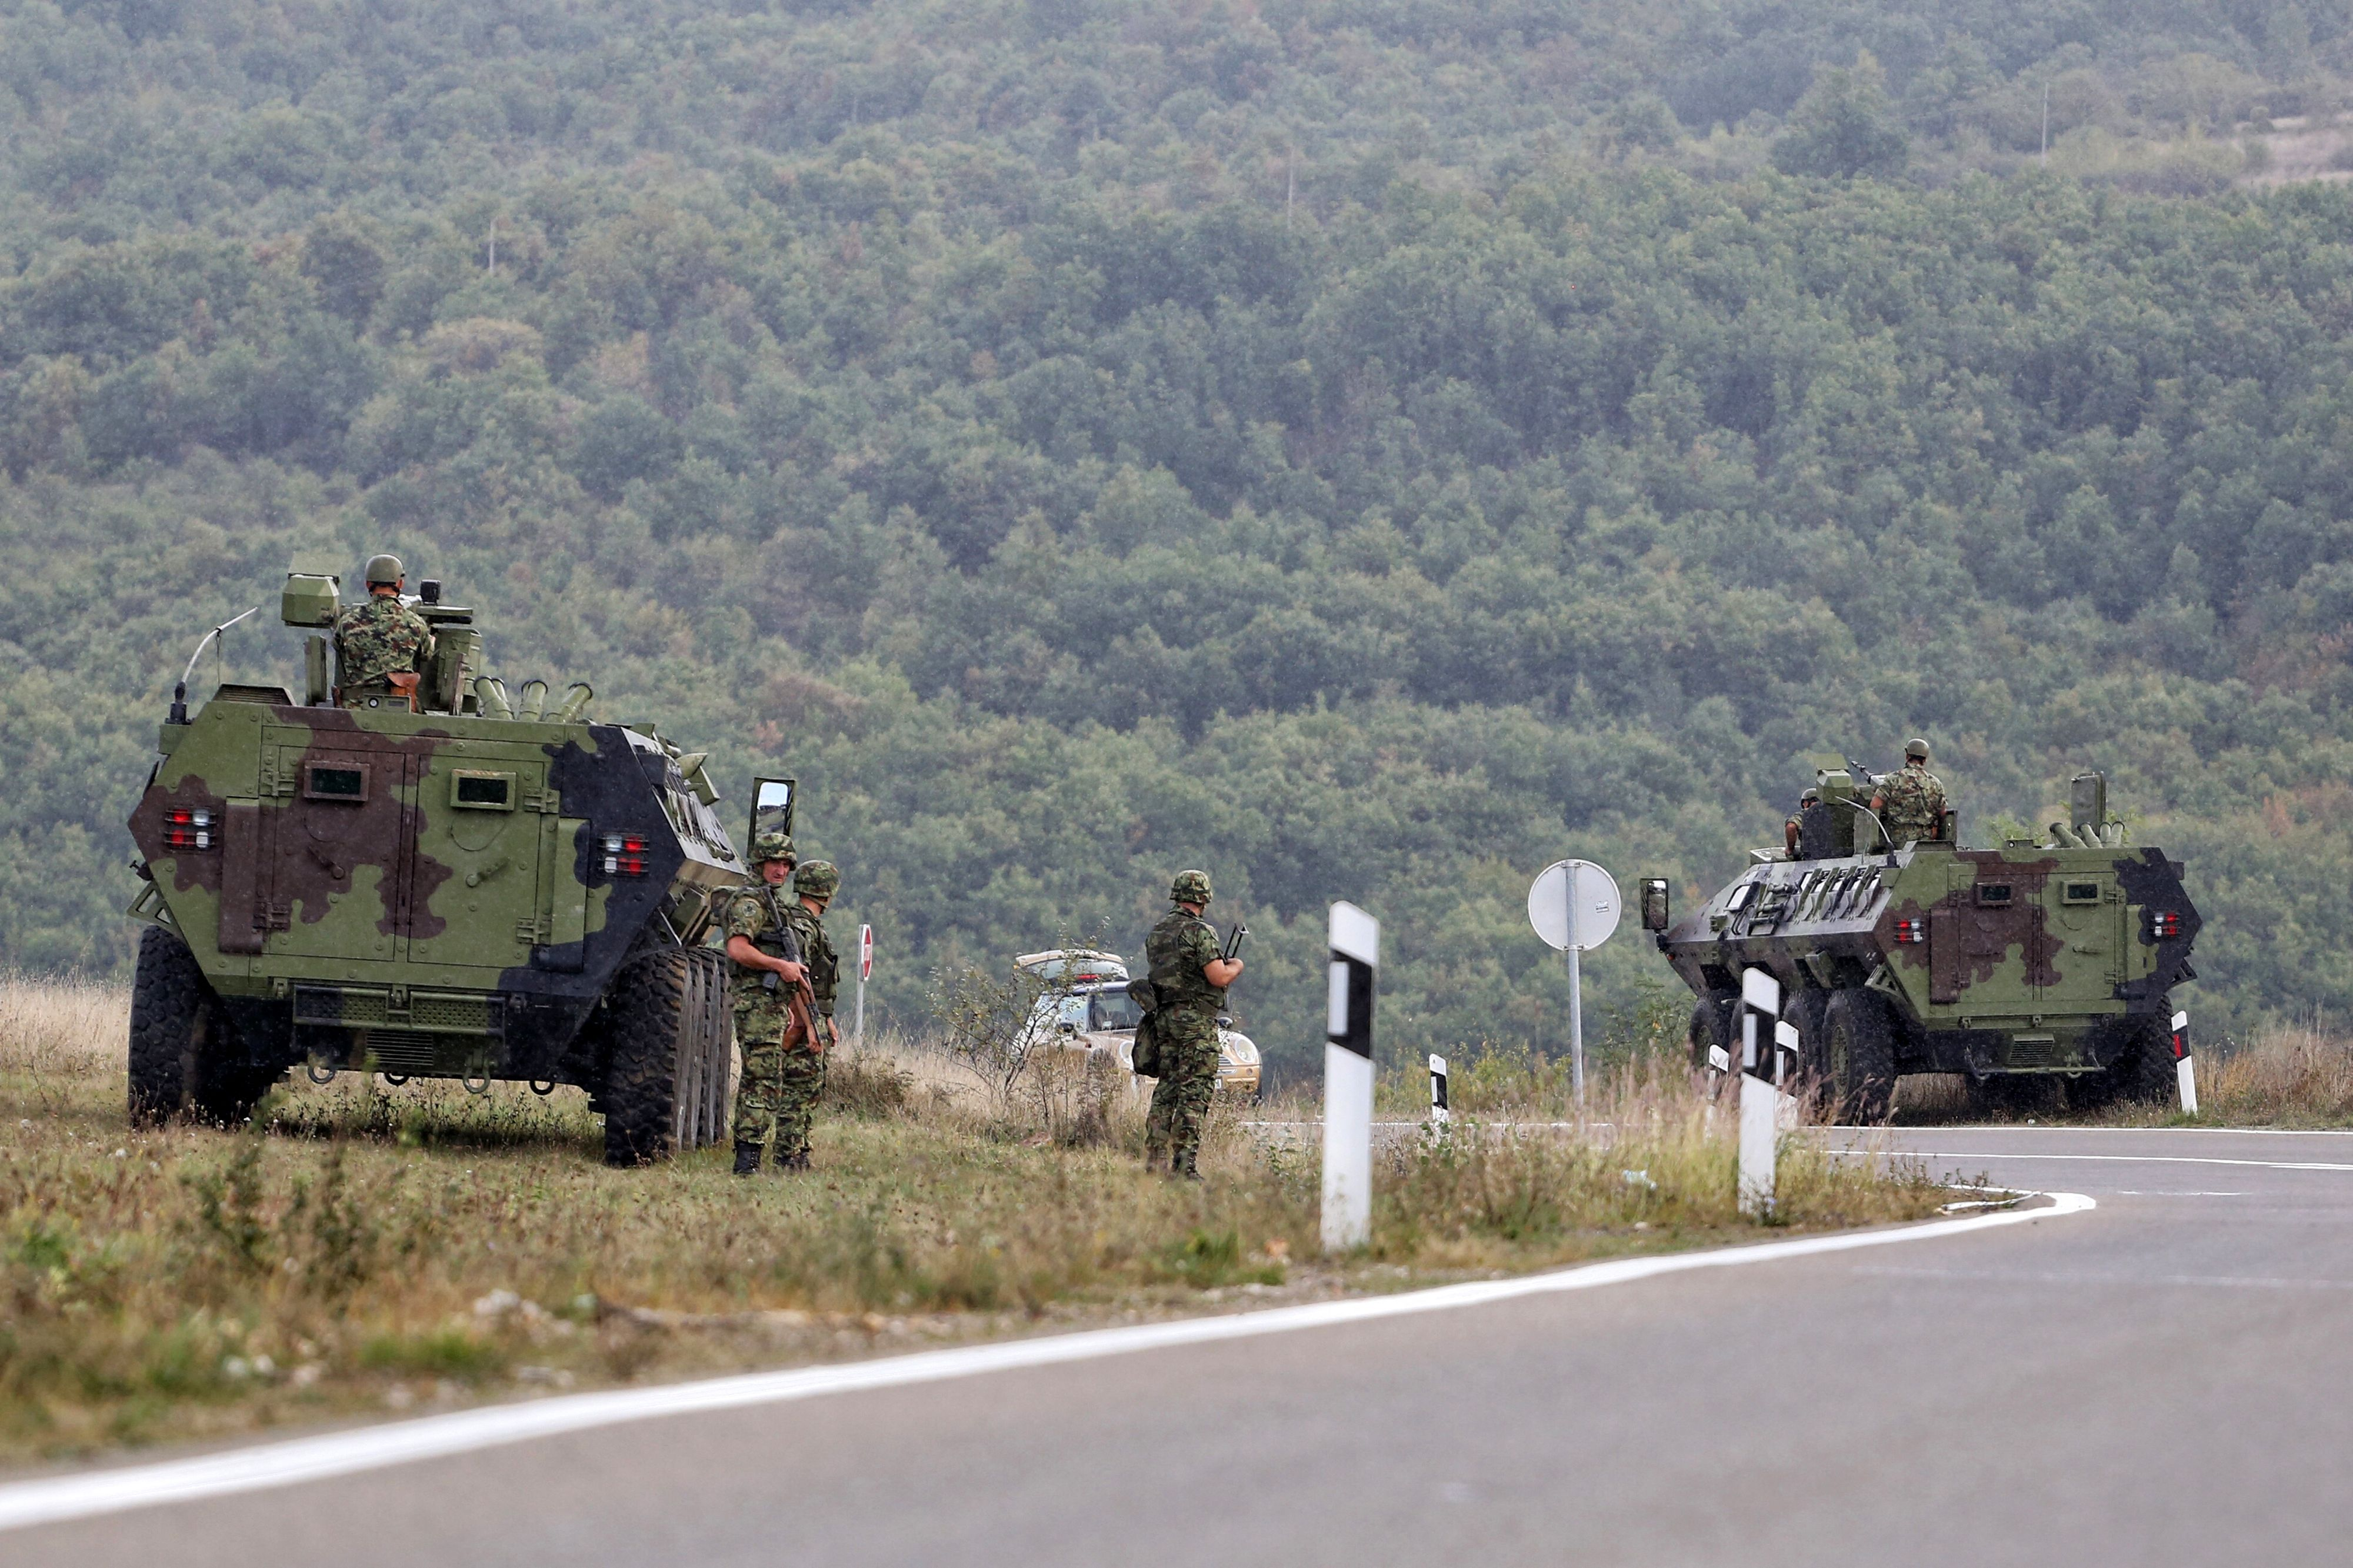 Serbian army soldiers stand guard by their armoured vehicles in the village of Rudnica near the southern Serbian town of Raska on September 27, 2021, where tensions are high at the border between Kosovo and Serbia as Belgrade deployed four armoured vehicles close to the frontier, an AFP correspondent saw.(Photo by IRFAN LICINA/AFP via Getty Images)